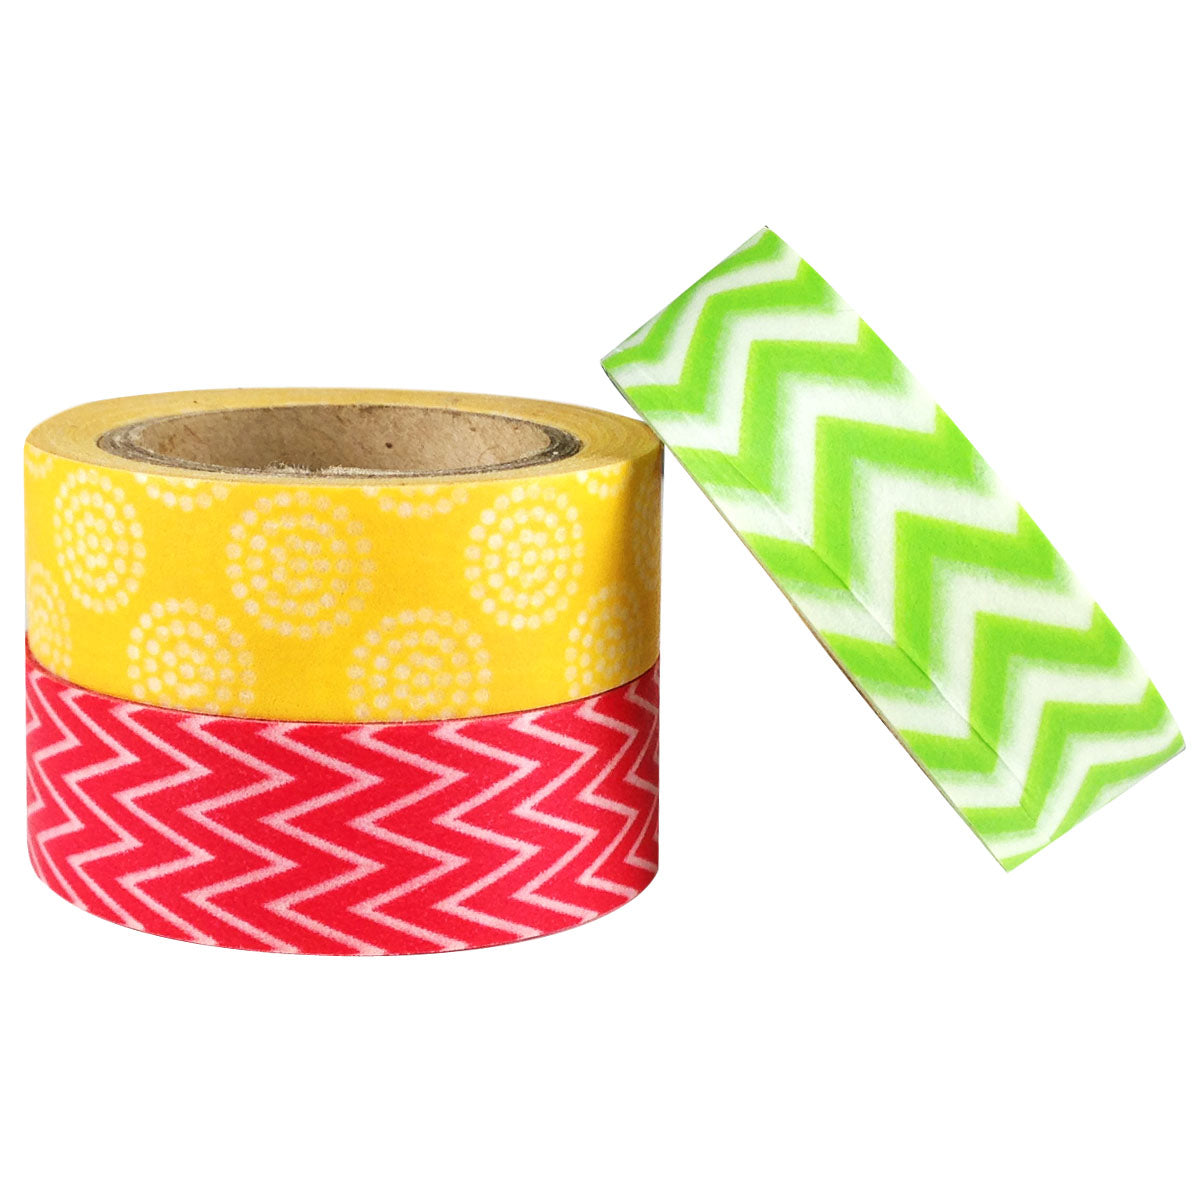 Summer Fun Japanese Washi Masking Tape (set of 3)